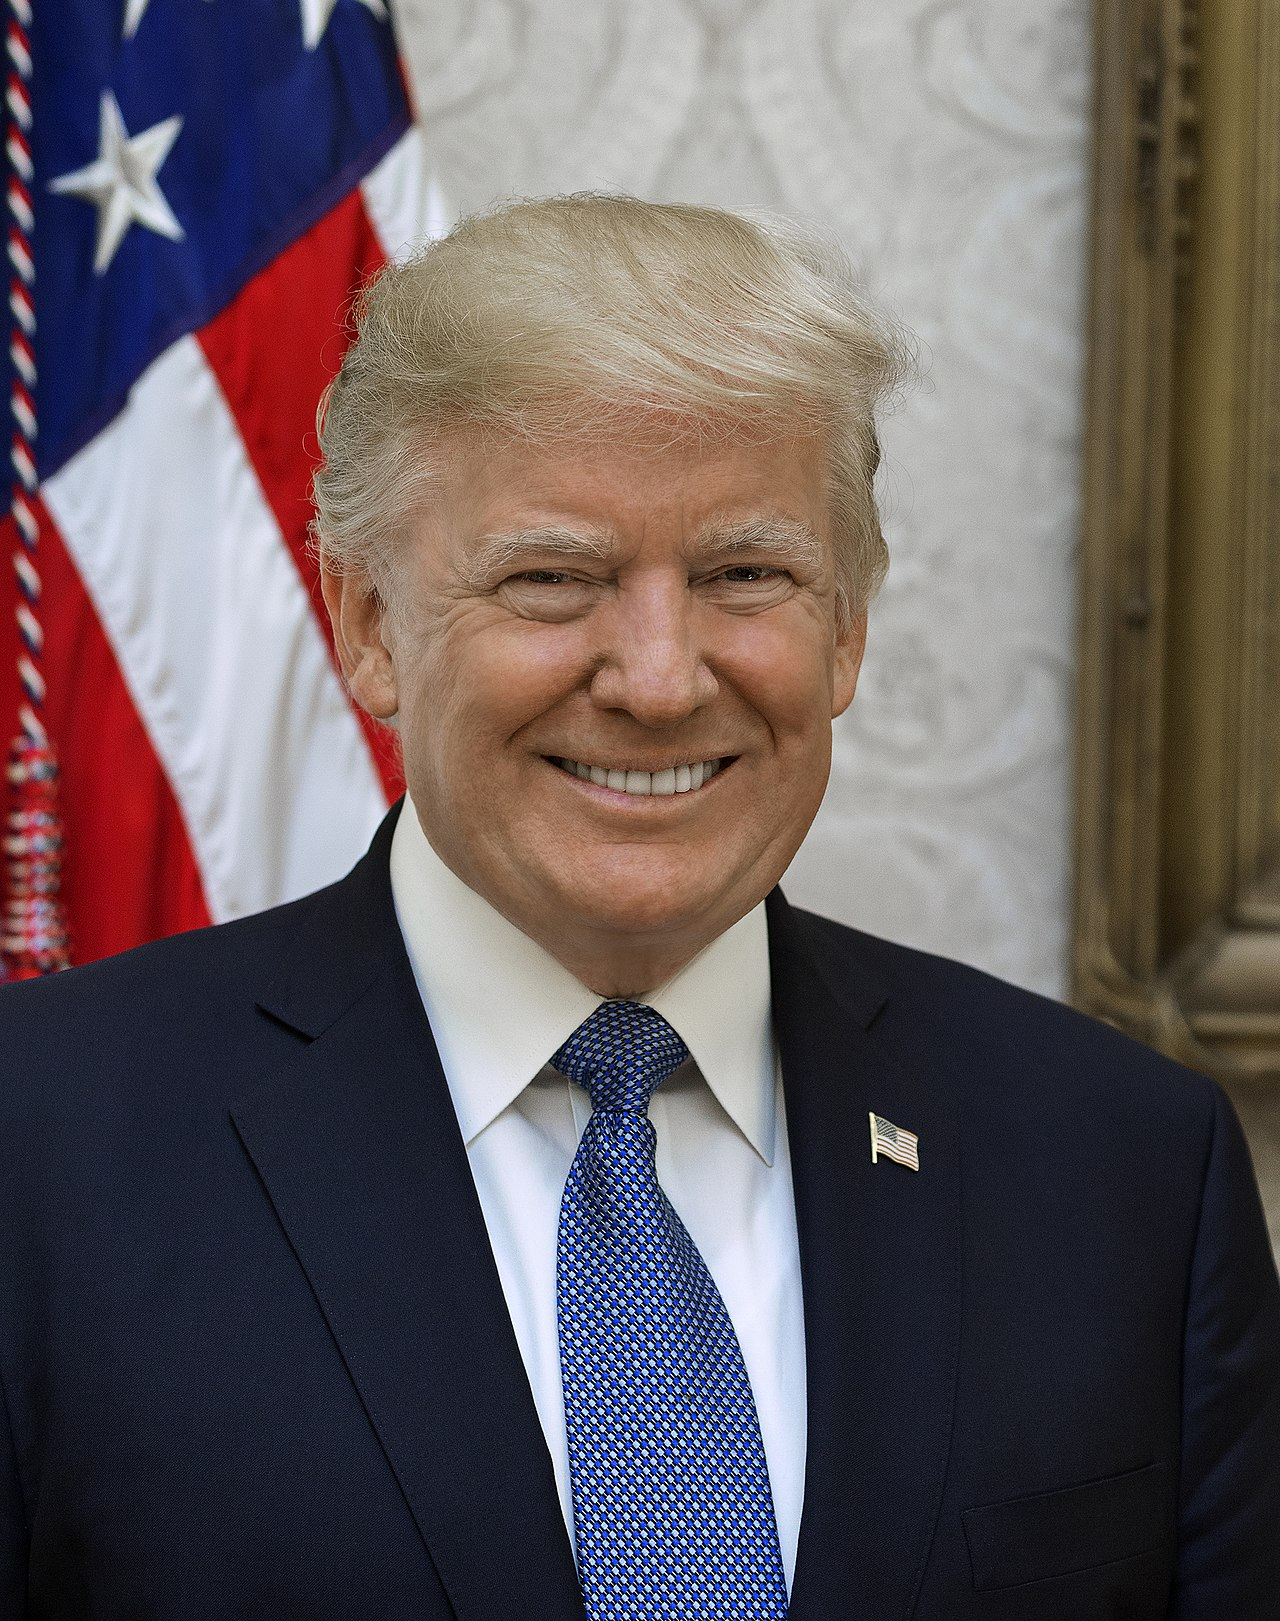 Official White House portrait. Head shot of Trump smiling in front of the U.S. flag, wearing a dark blue suit jacket with American flag lapel pin, white shirt, and light blue necktie.